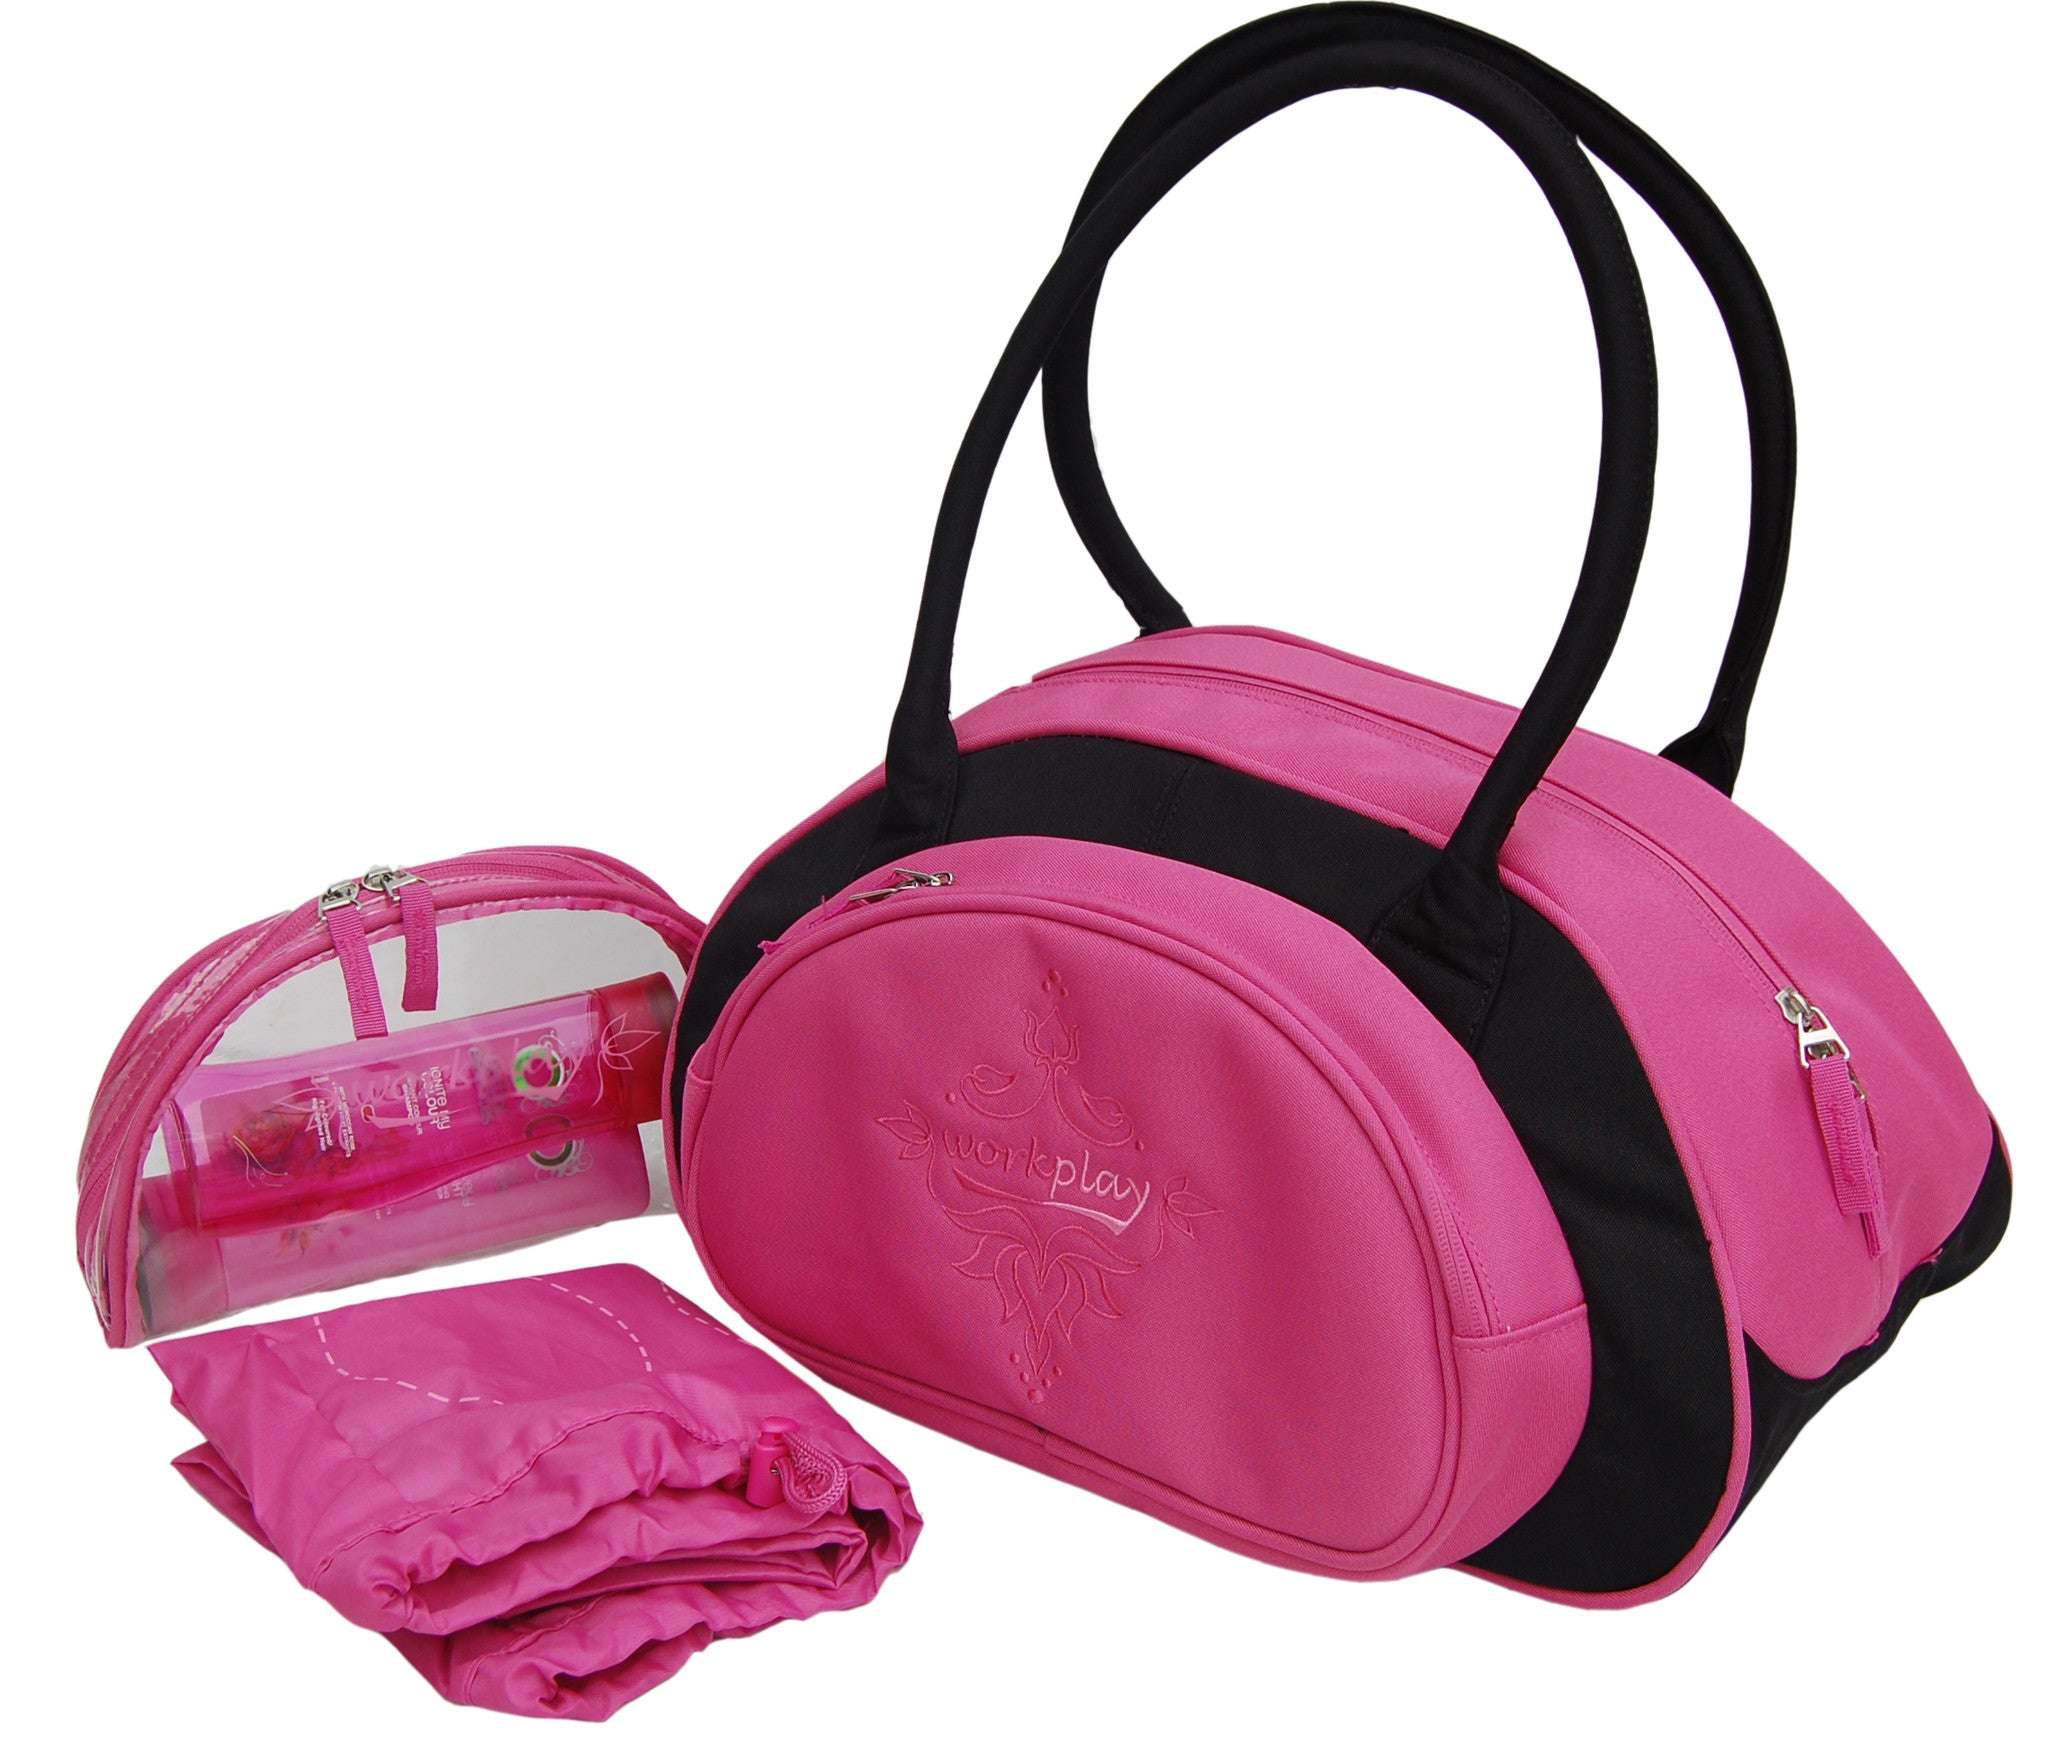 92ed431325ff6 Minigym Pink Small Gym Bag for Women